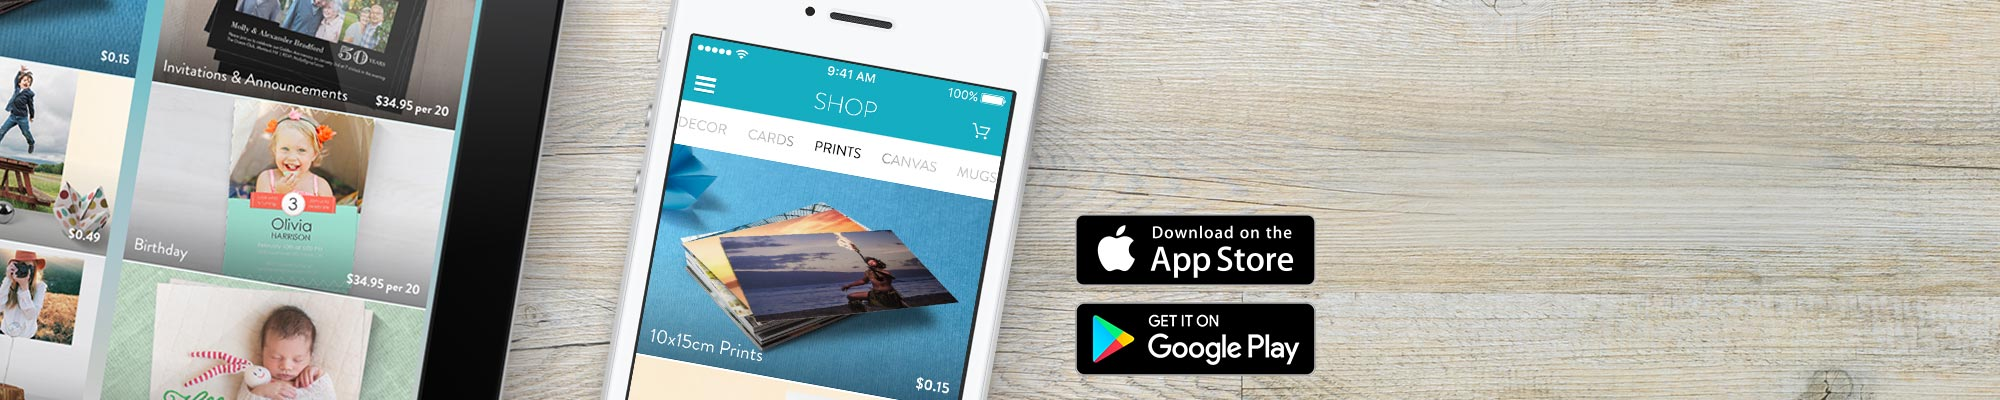 Snapfish App Order on the go with our appfor iPhone, iPad and Android.